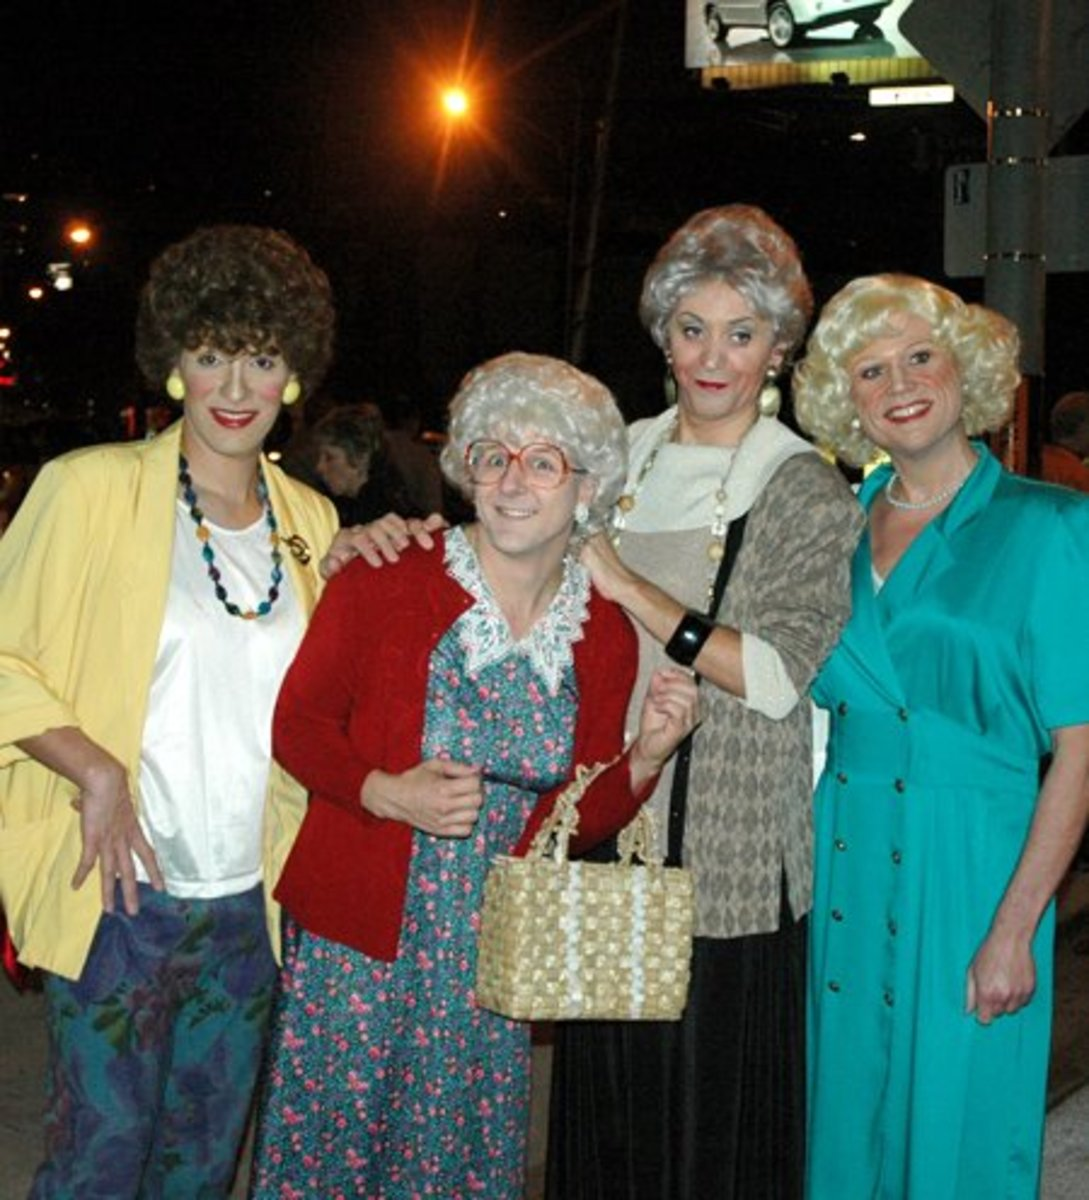 golden girls group costume 101 halloween costume ideas for women - Halloween Costume Idea Women